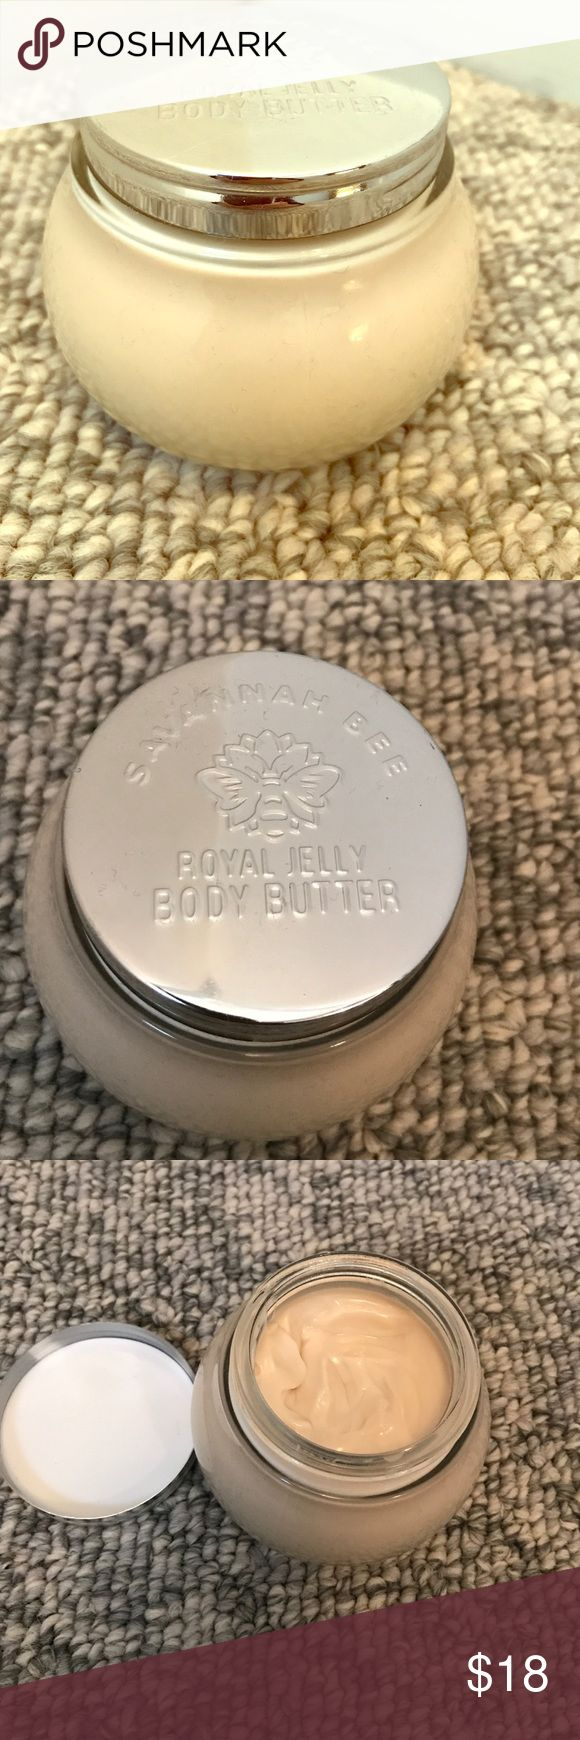 Savannah Bee Royal Jelly Body Butter Royal Jelly Body Butter. Hardly used. Great products, I just purchased the wrong one by mistake. Savannah Bee Makeup